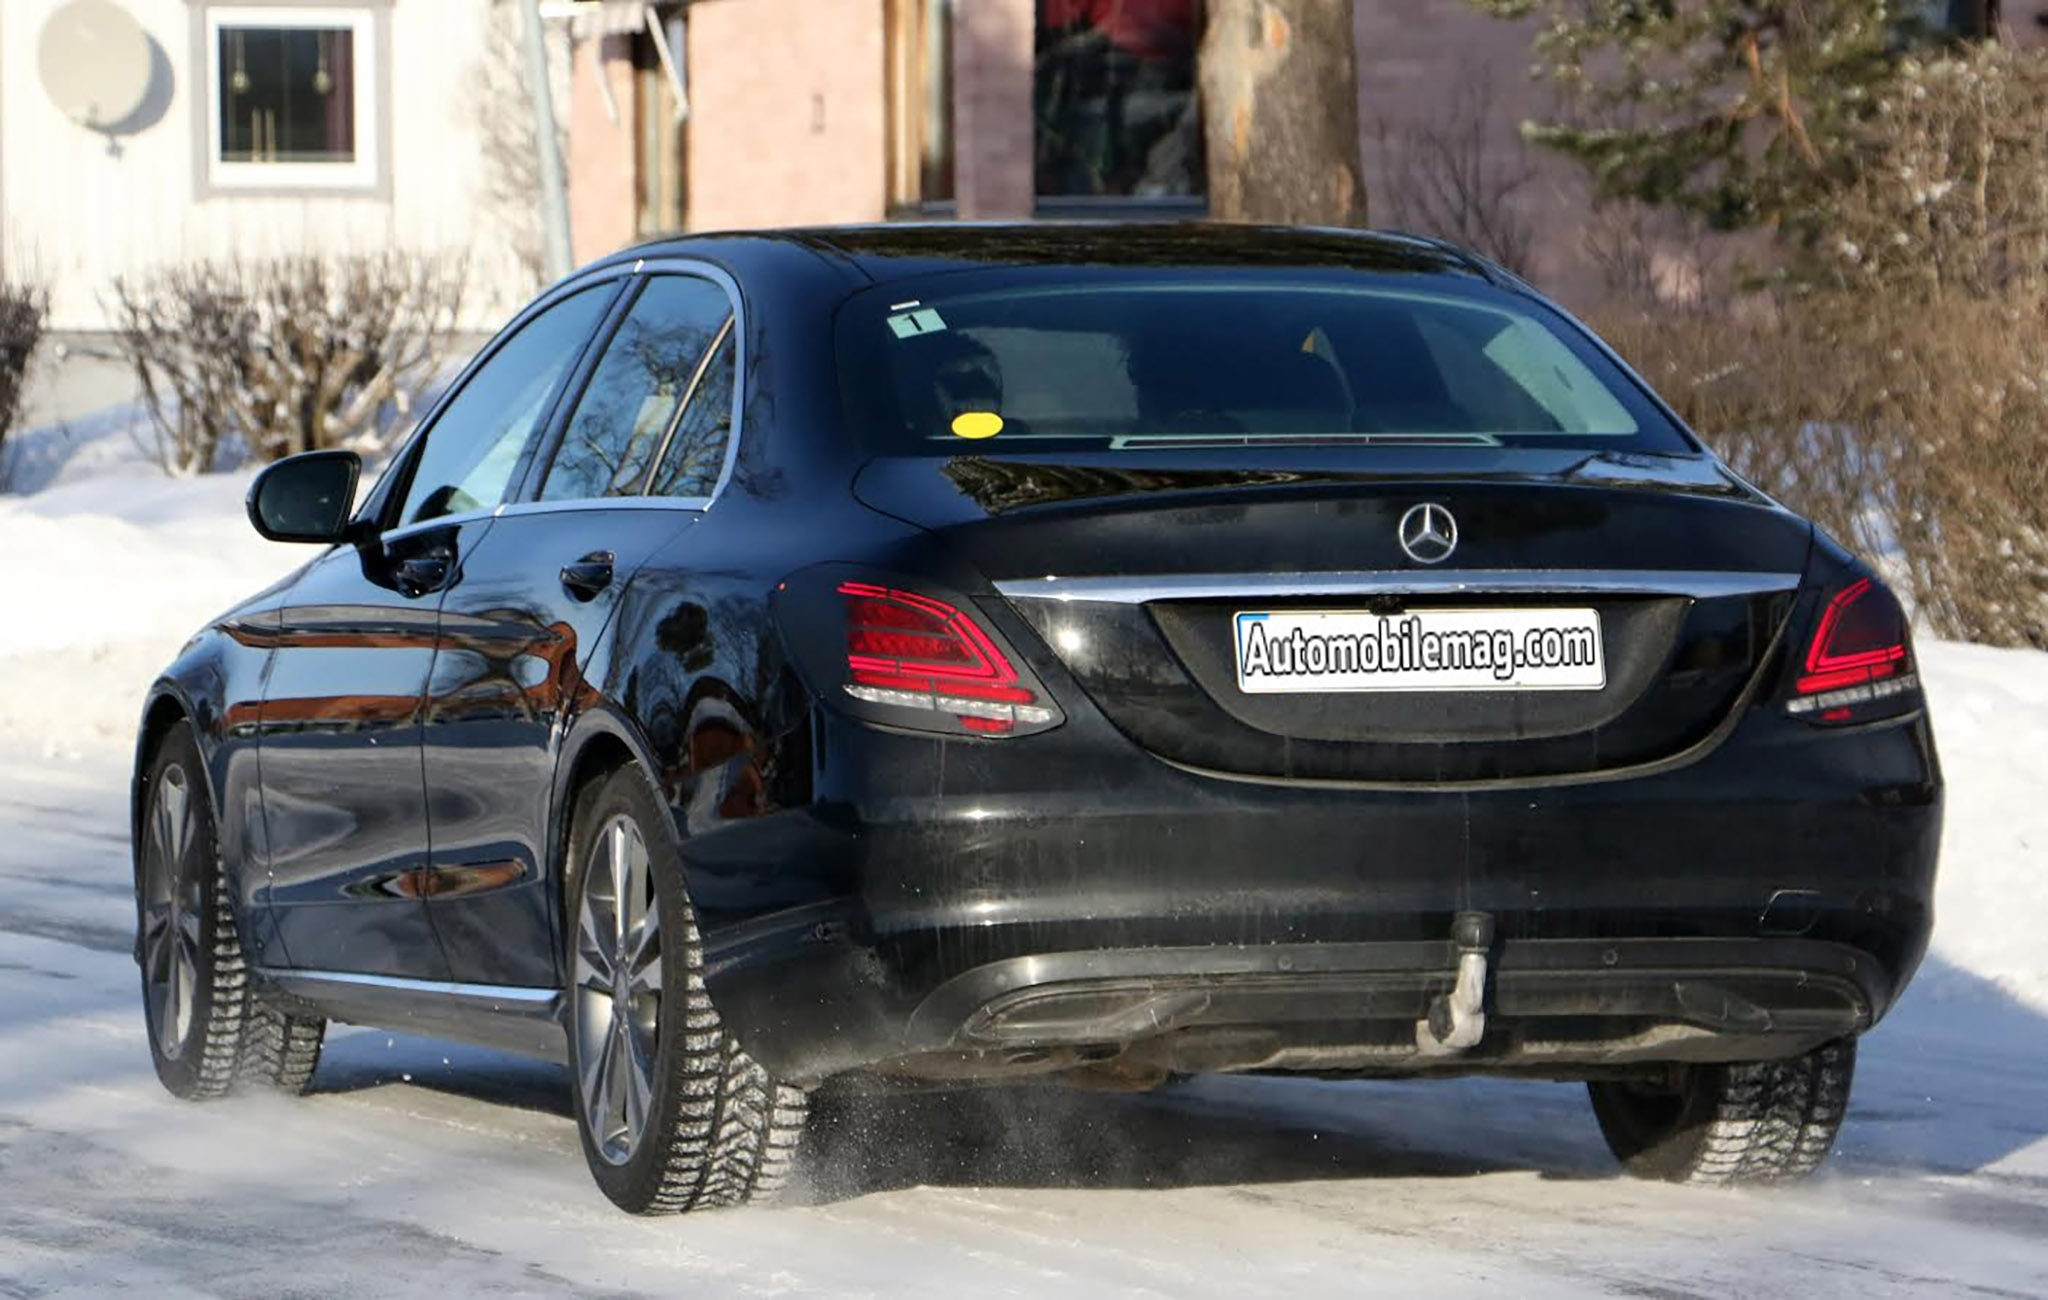 2018 Mercedes C300 Price >> 2018 Mercedes-Benz C-Class Spied with Tweaks | Automobile Magazine